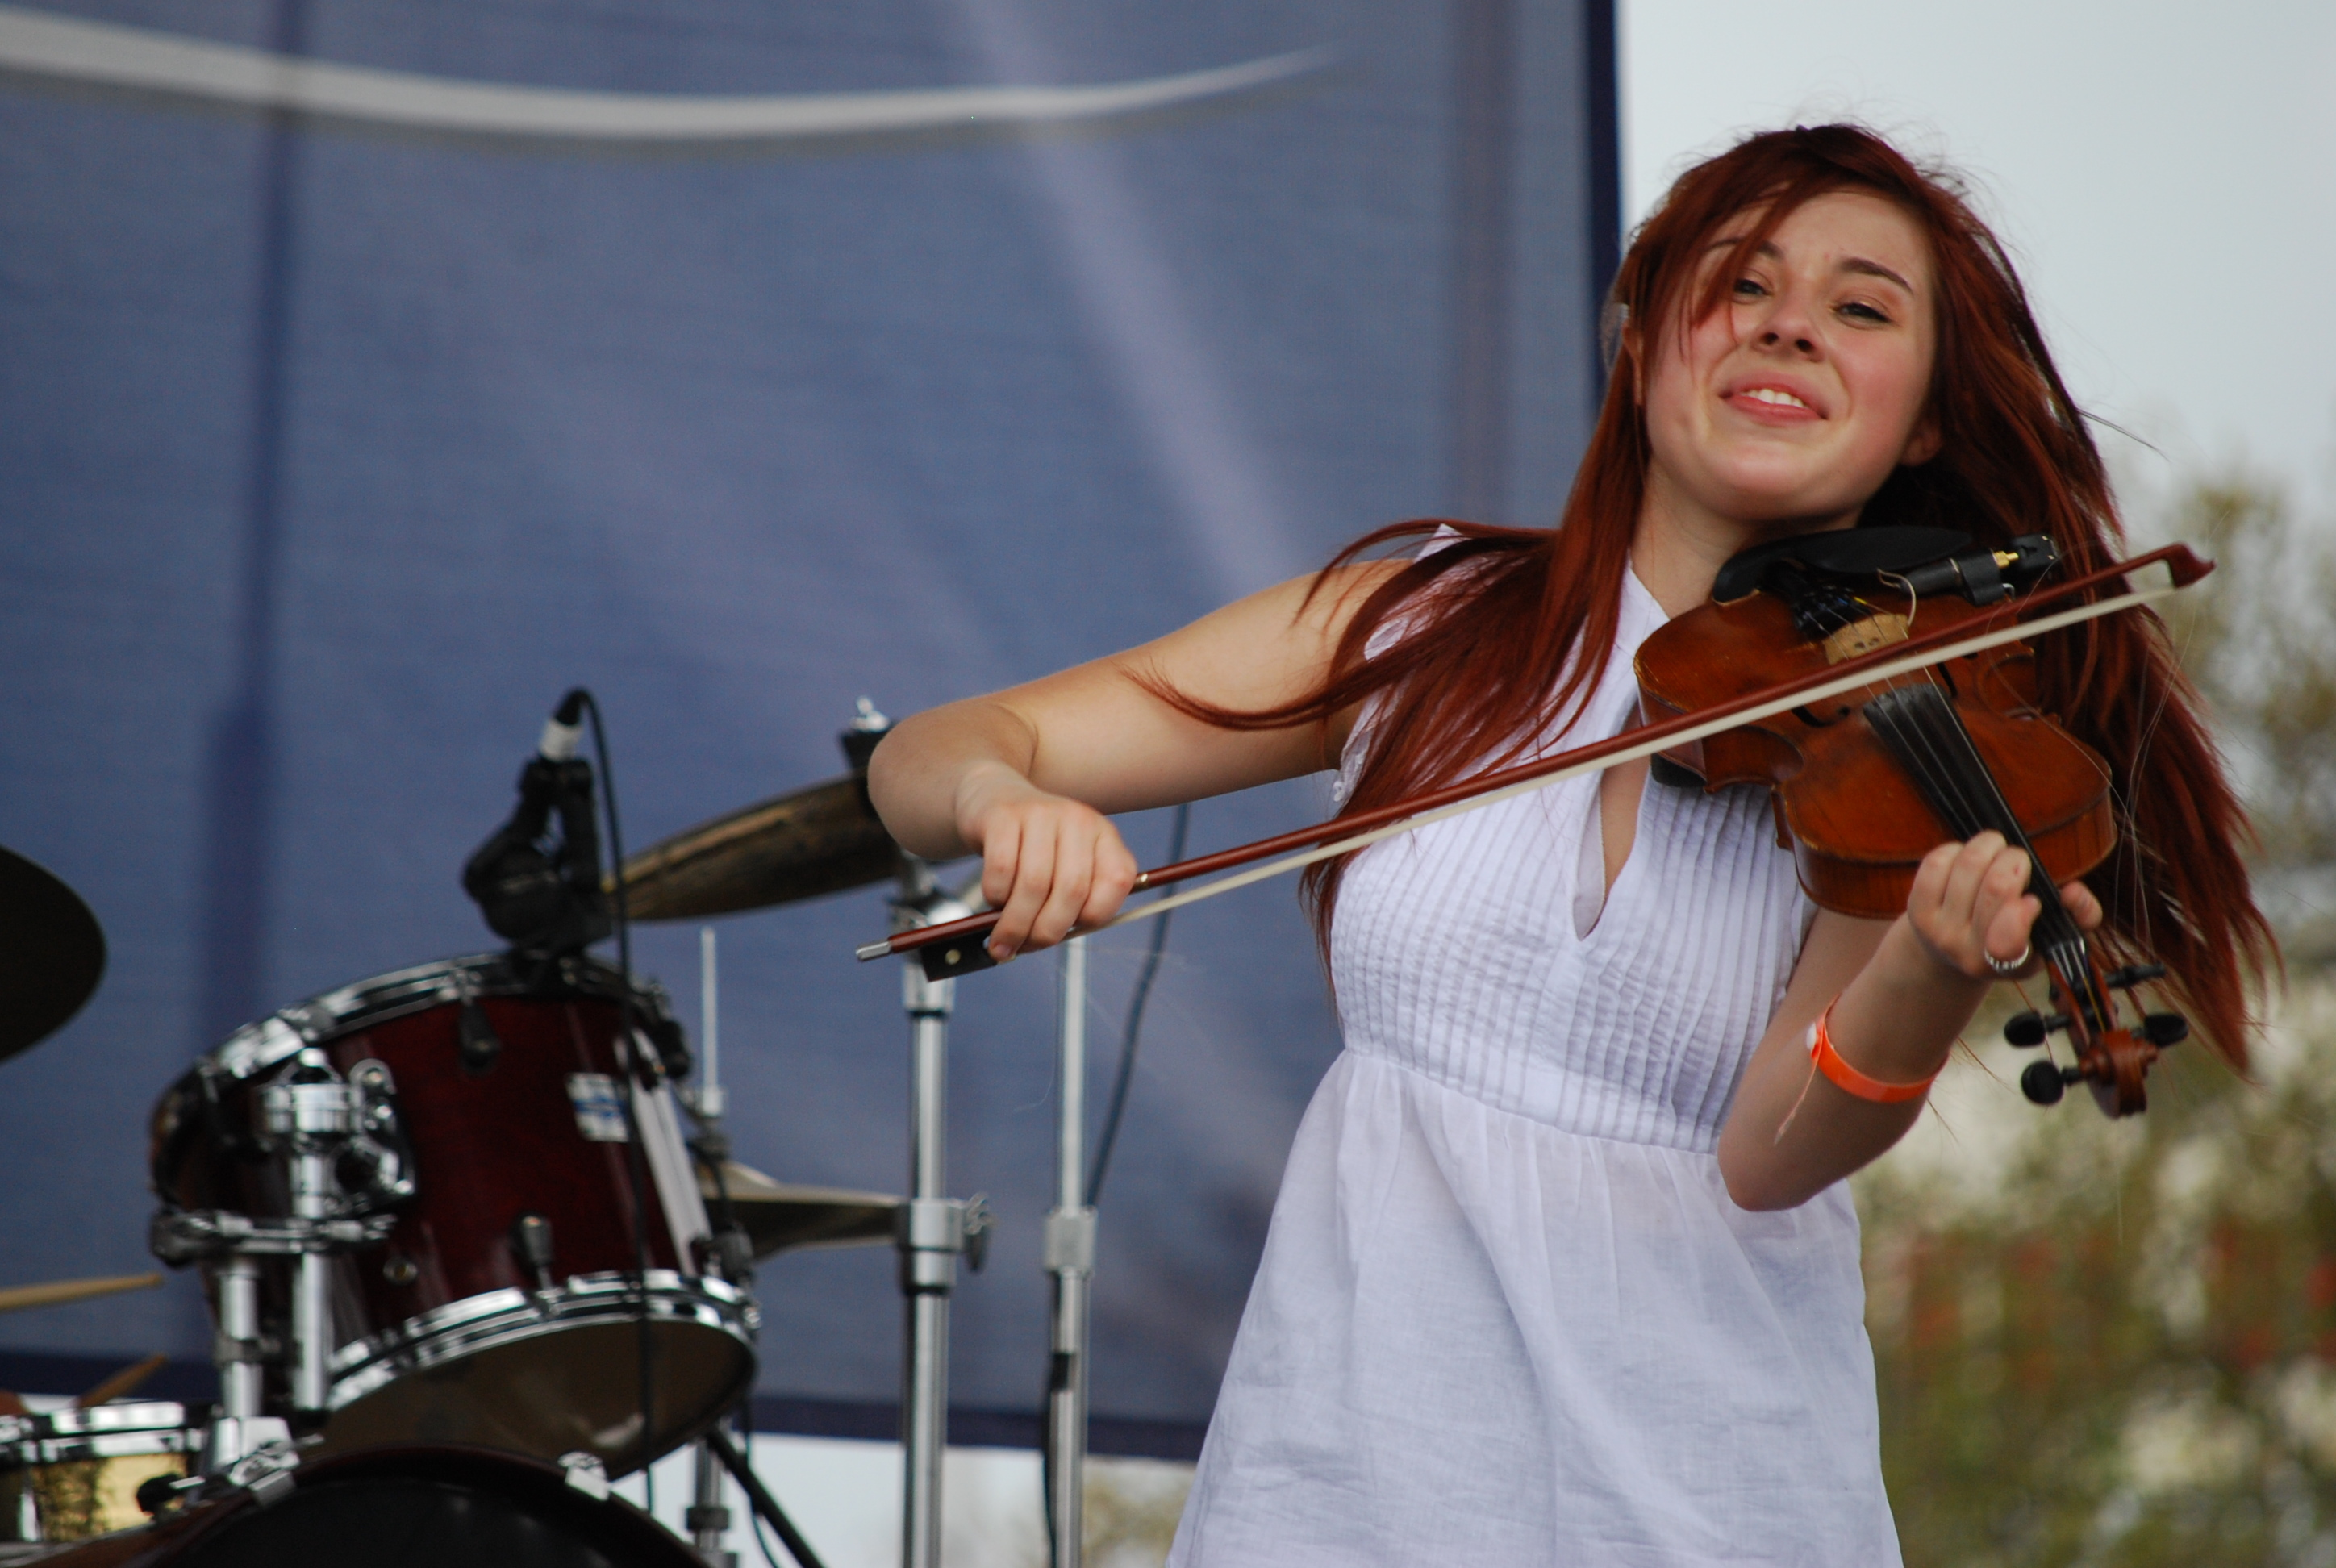 A woman plays violin at an outdoor festival